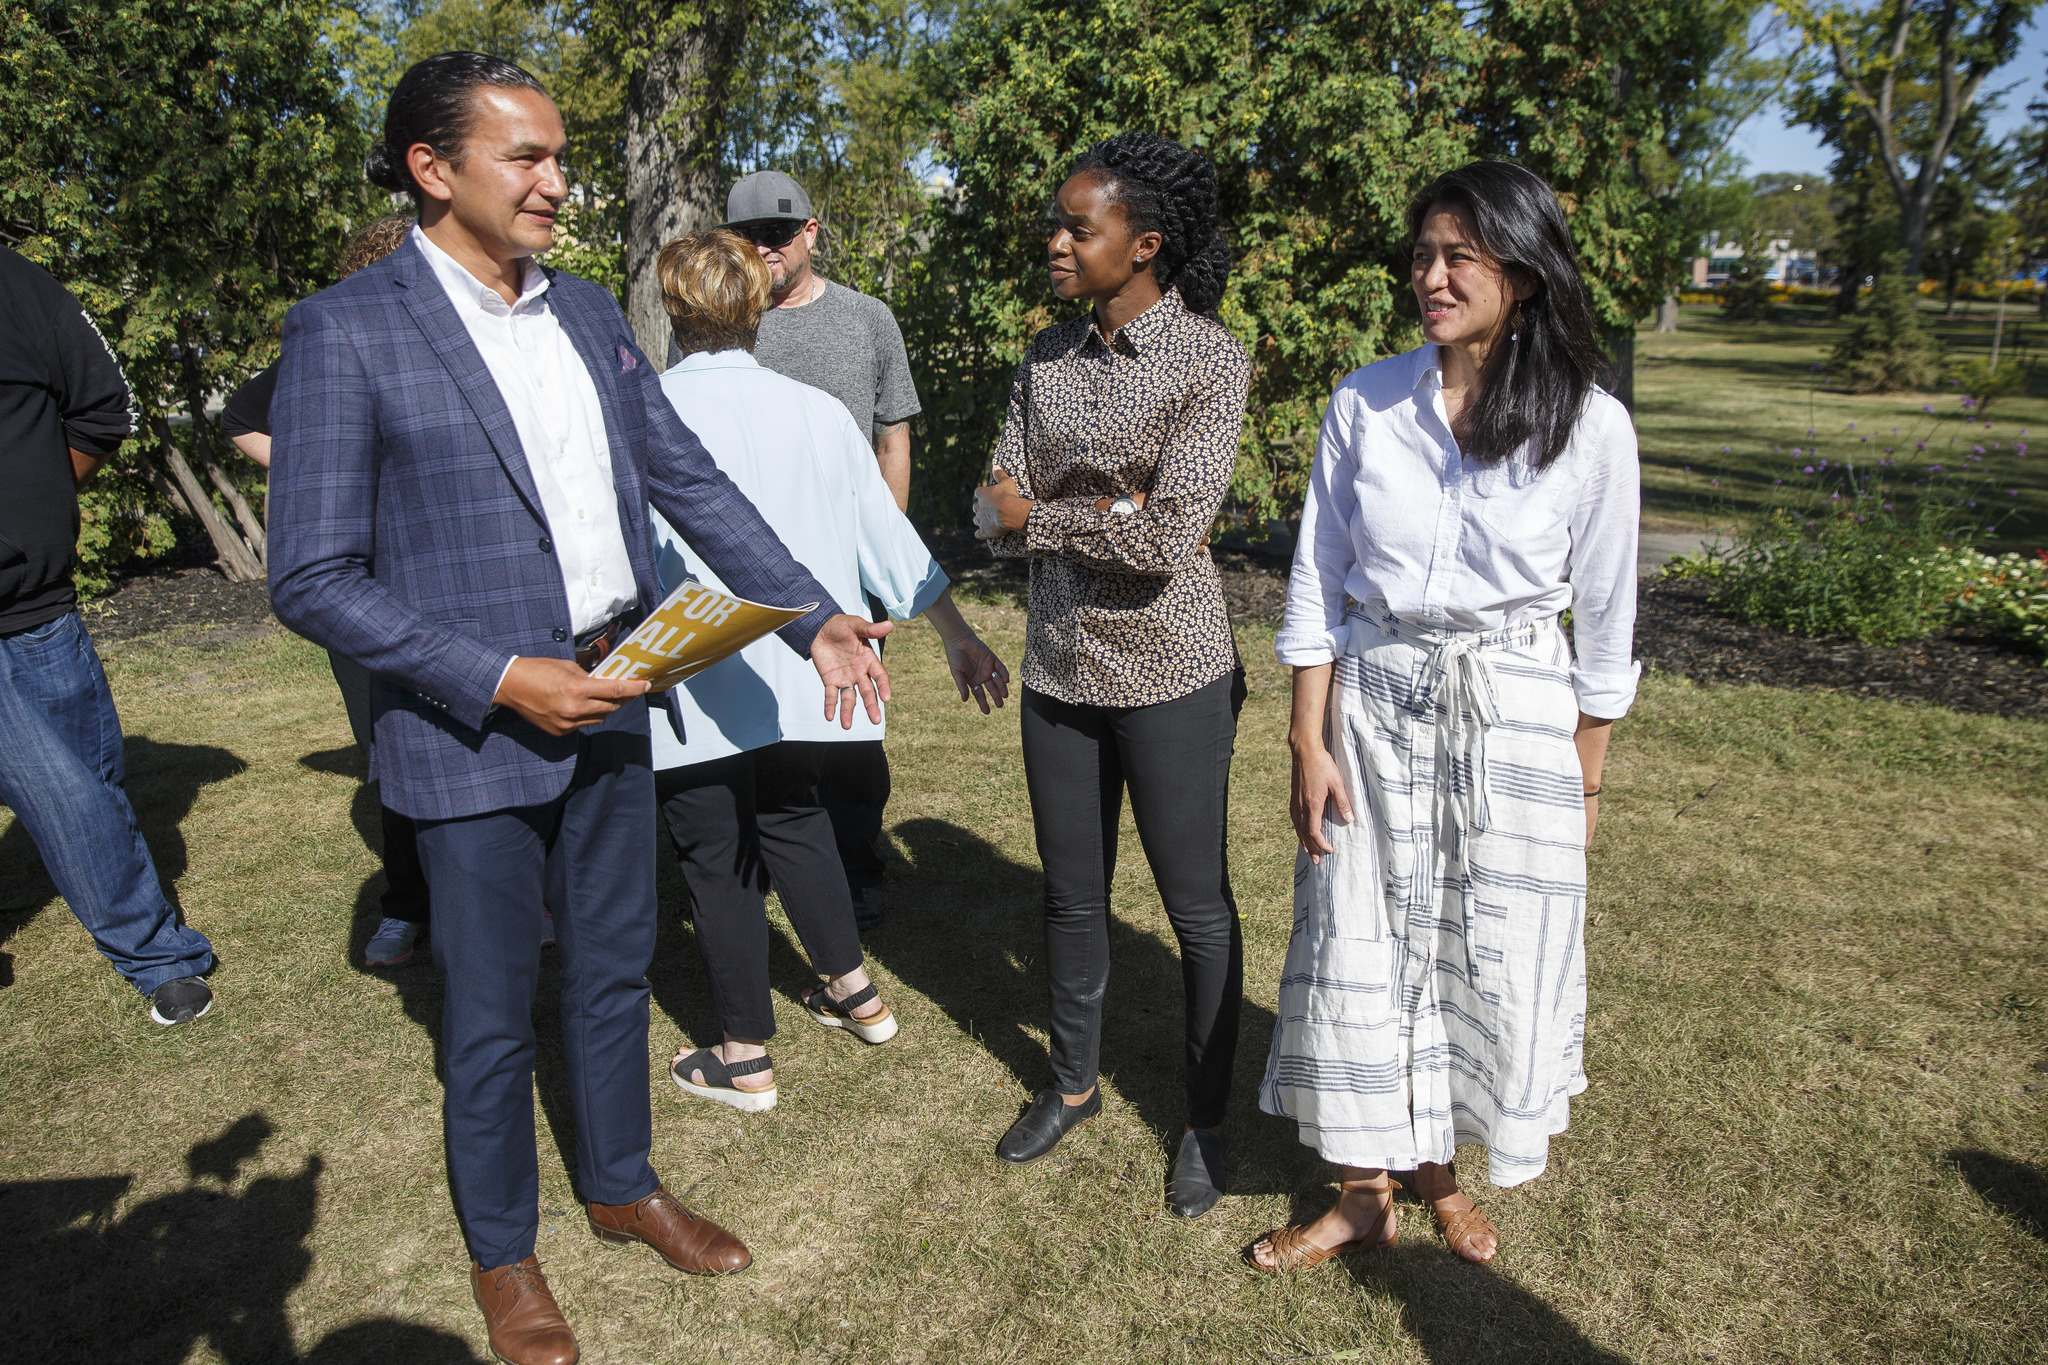 MIKE DEAL / WINNIPEG FREE PRESS</p><p>NDP candidates (from left) NDP Leader Wab Kinew, Uzoma Asagwara (Union Station) and Malaya Marcelino (Notre Dame), during a press conference in Vimy Ridge Park Monday.</p>